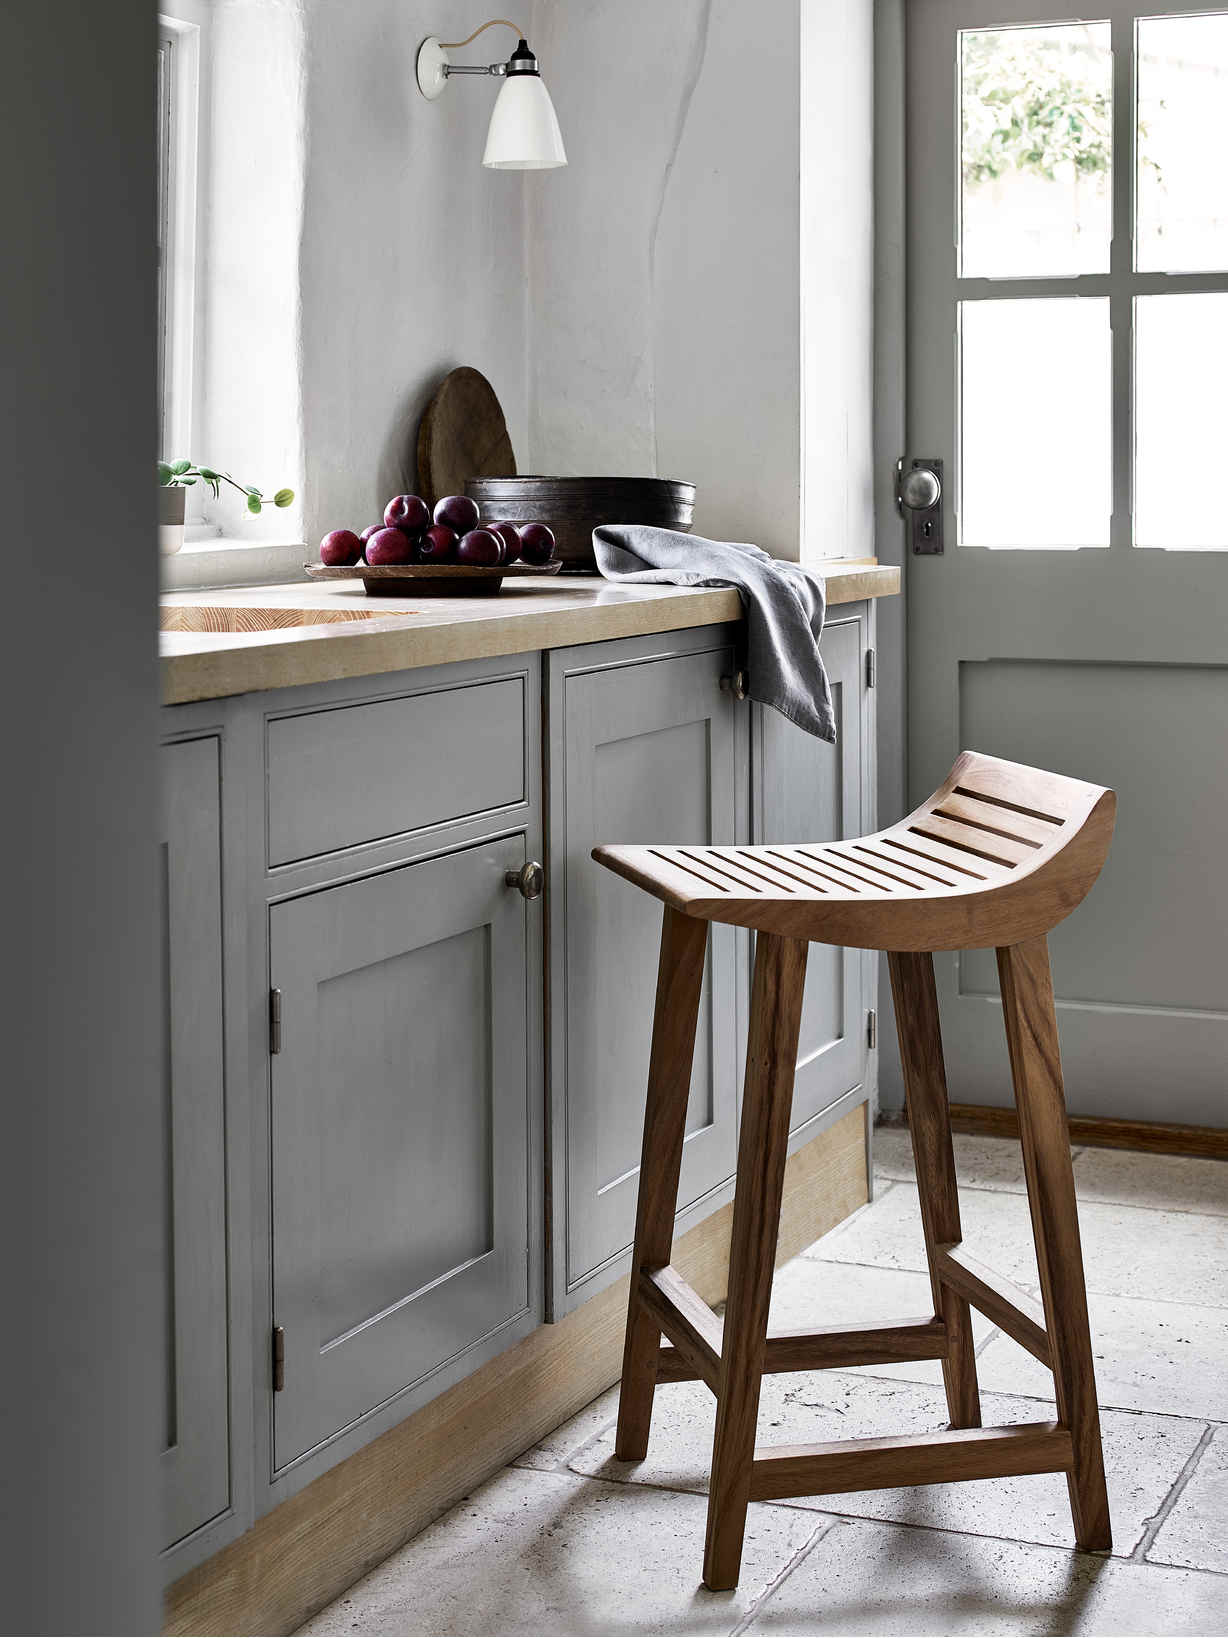 Nordic House Curved Kitchen Stool